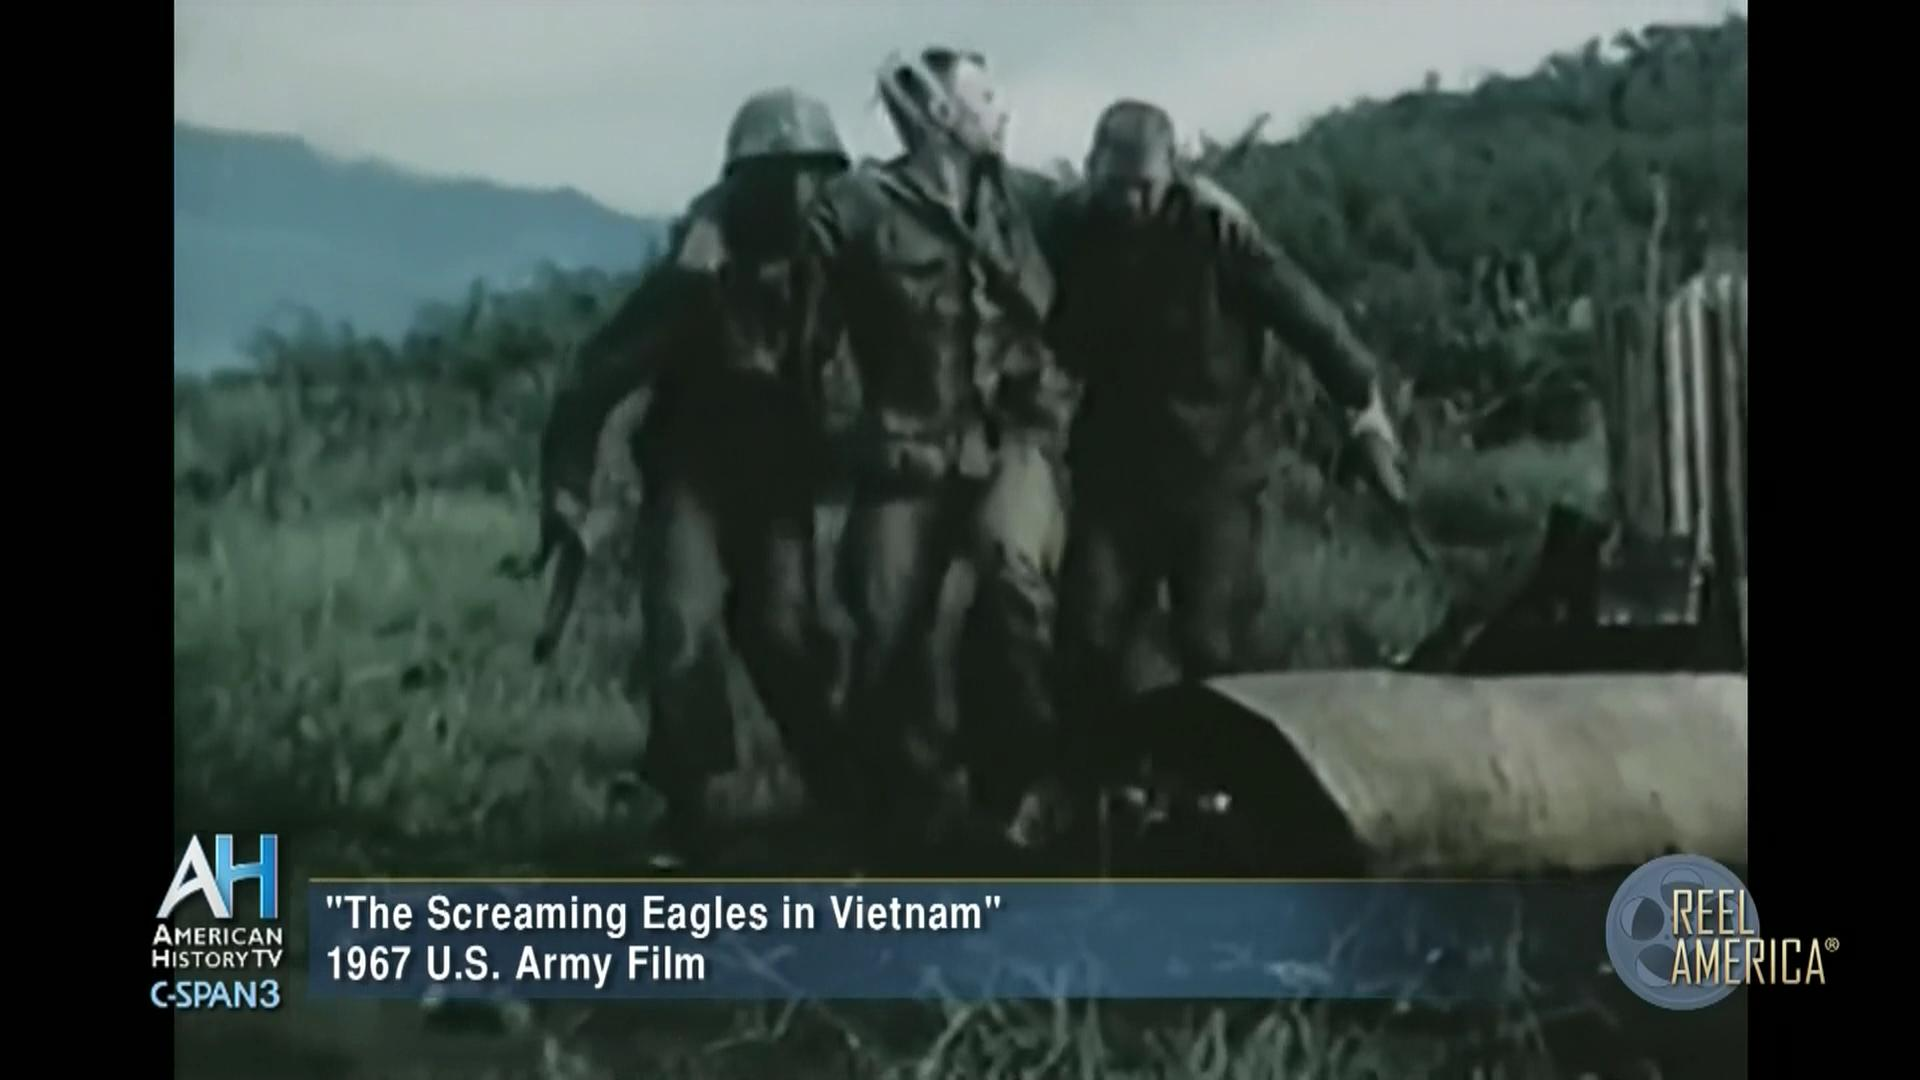 1967 Film The Screaming Eagles in Vietnam